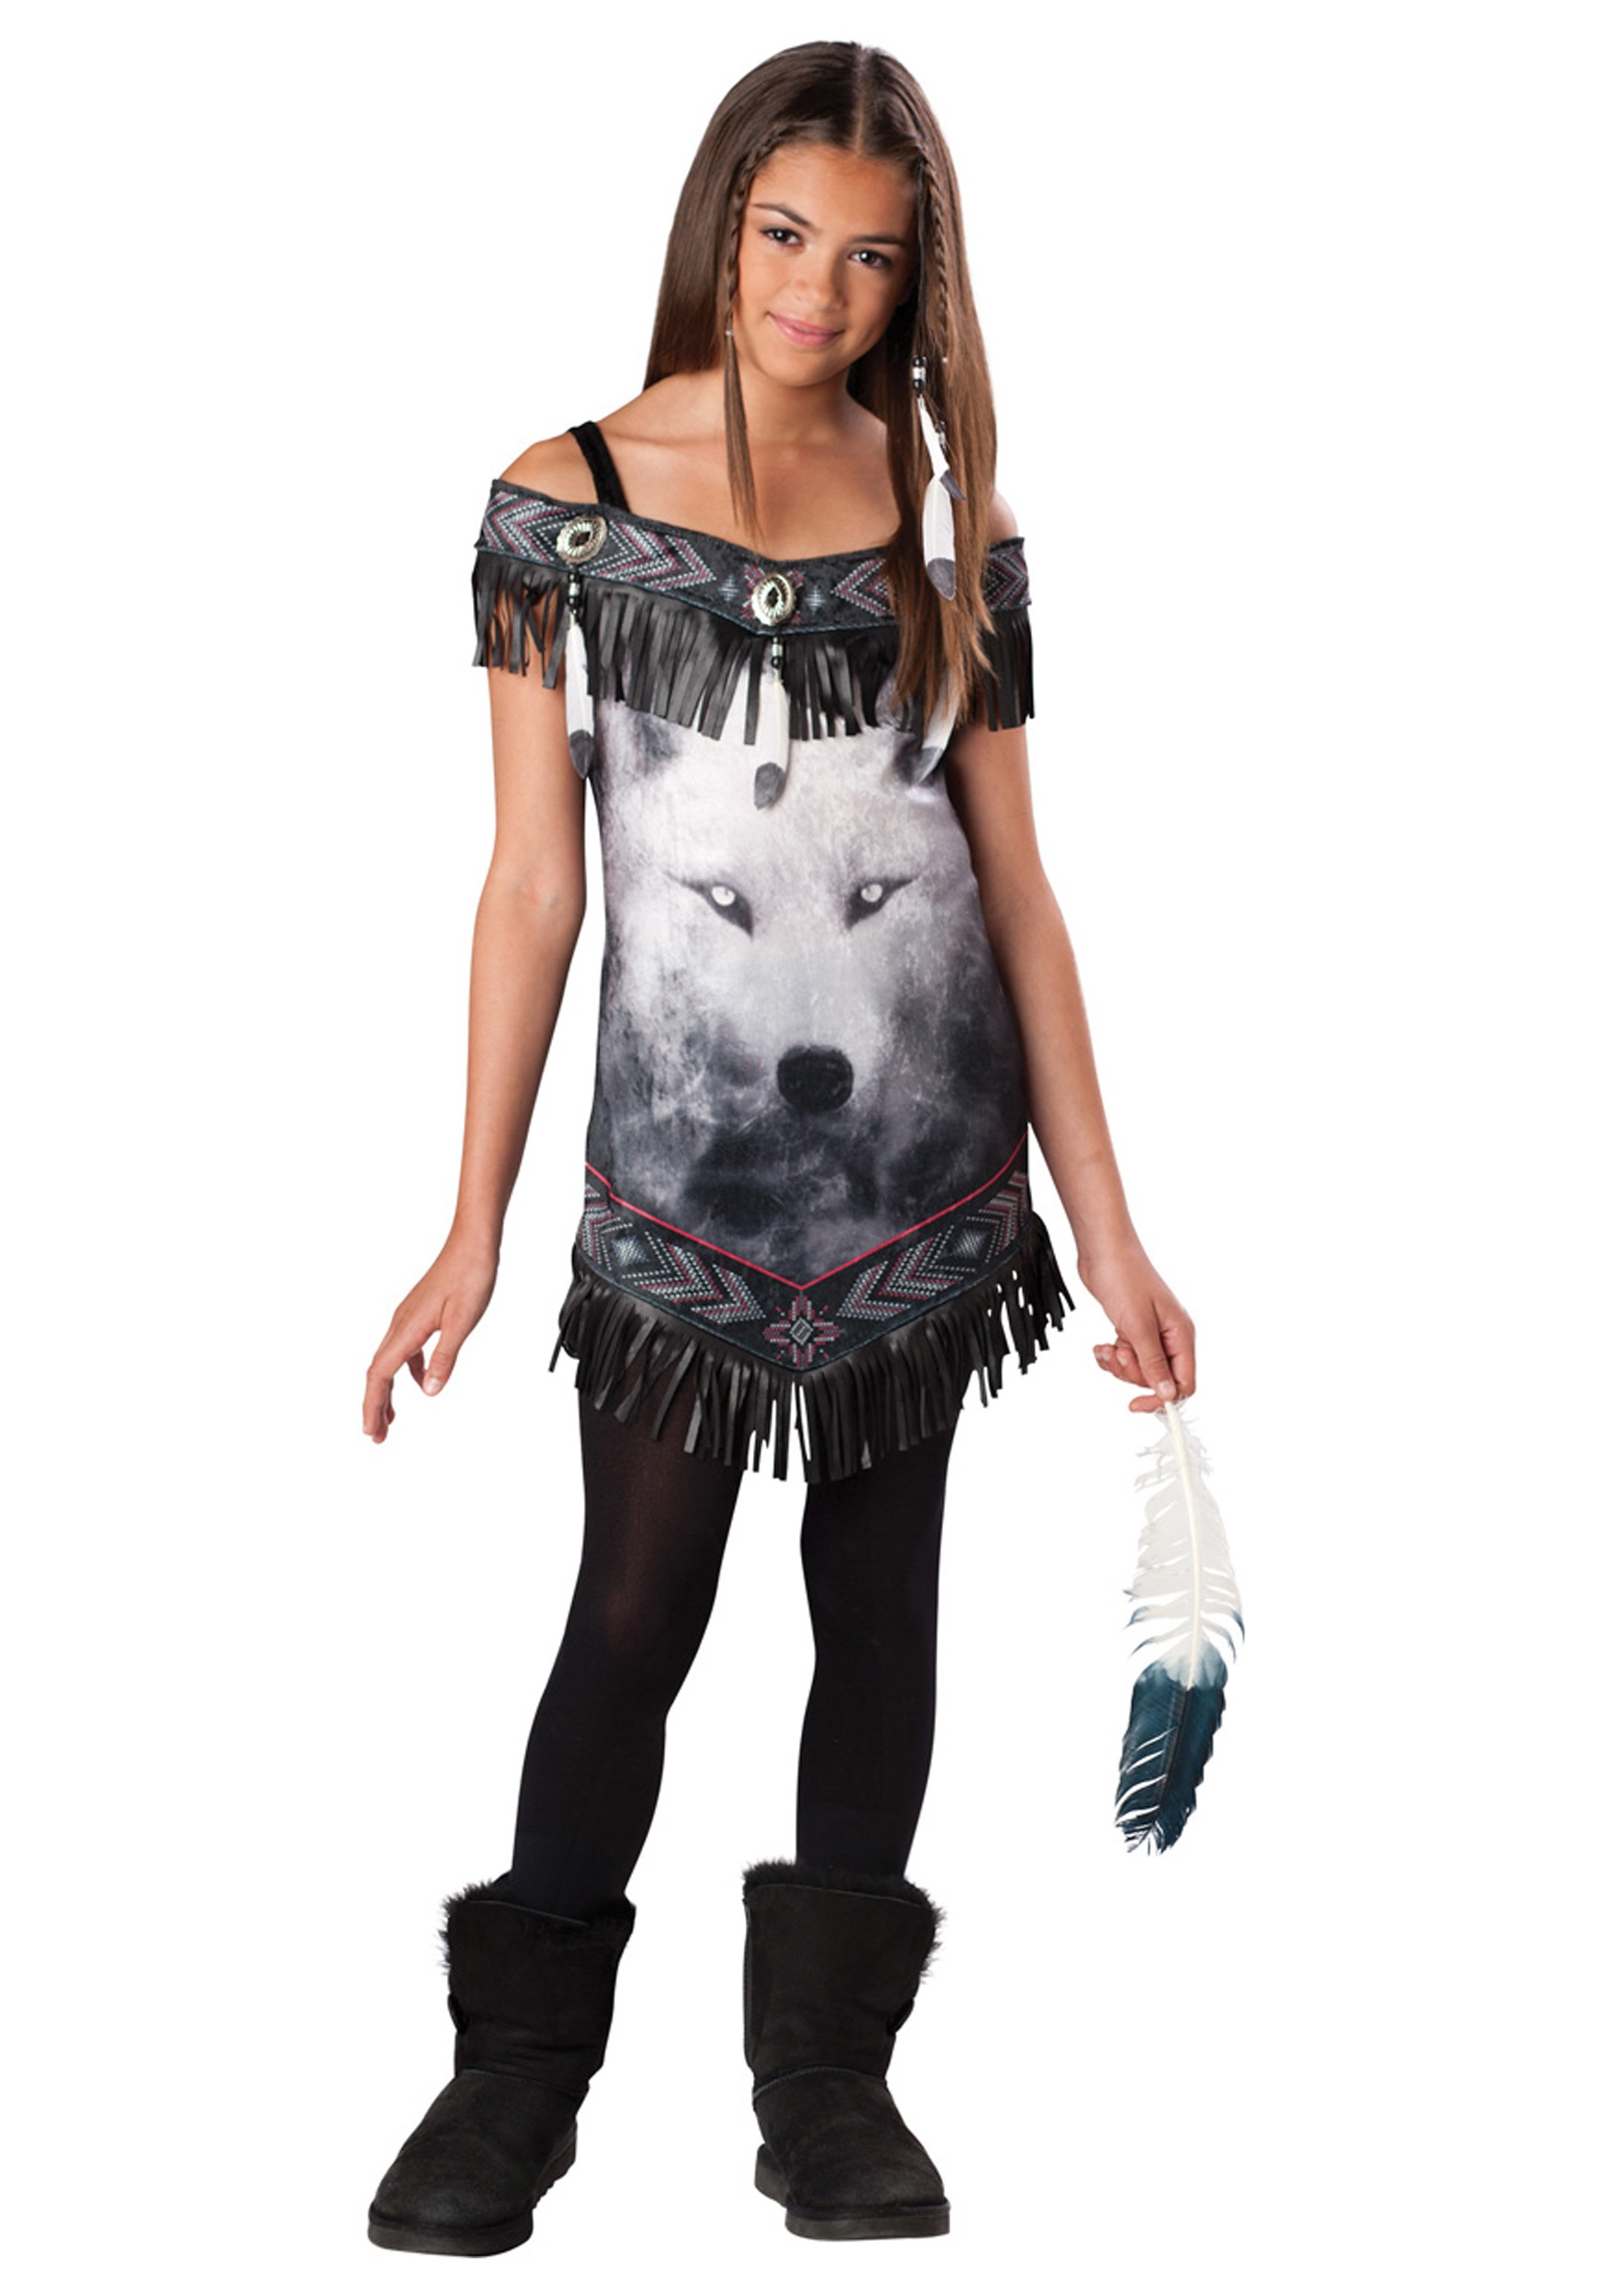 Spirit halloween costums / Spotify coupon code free